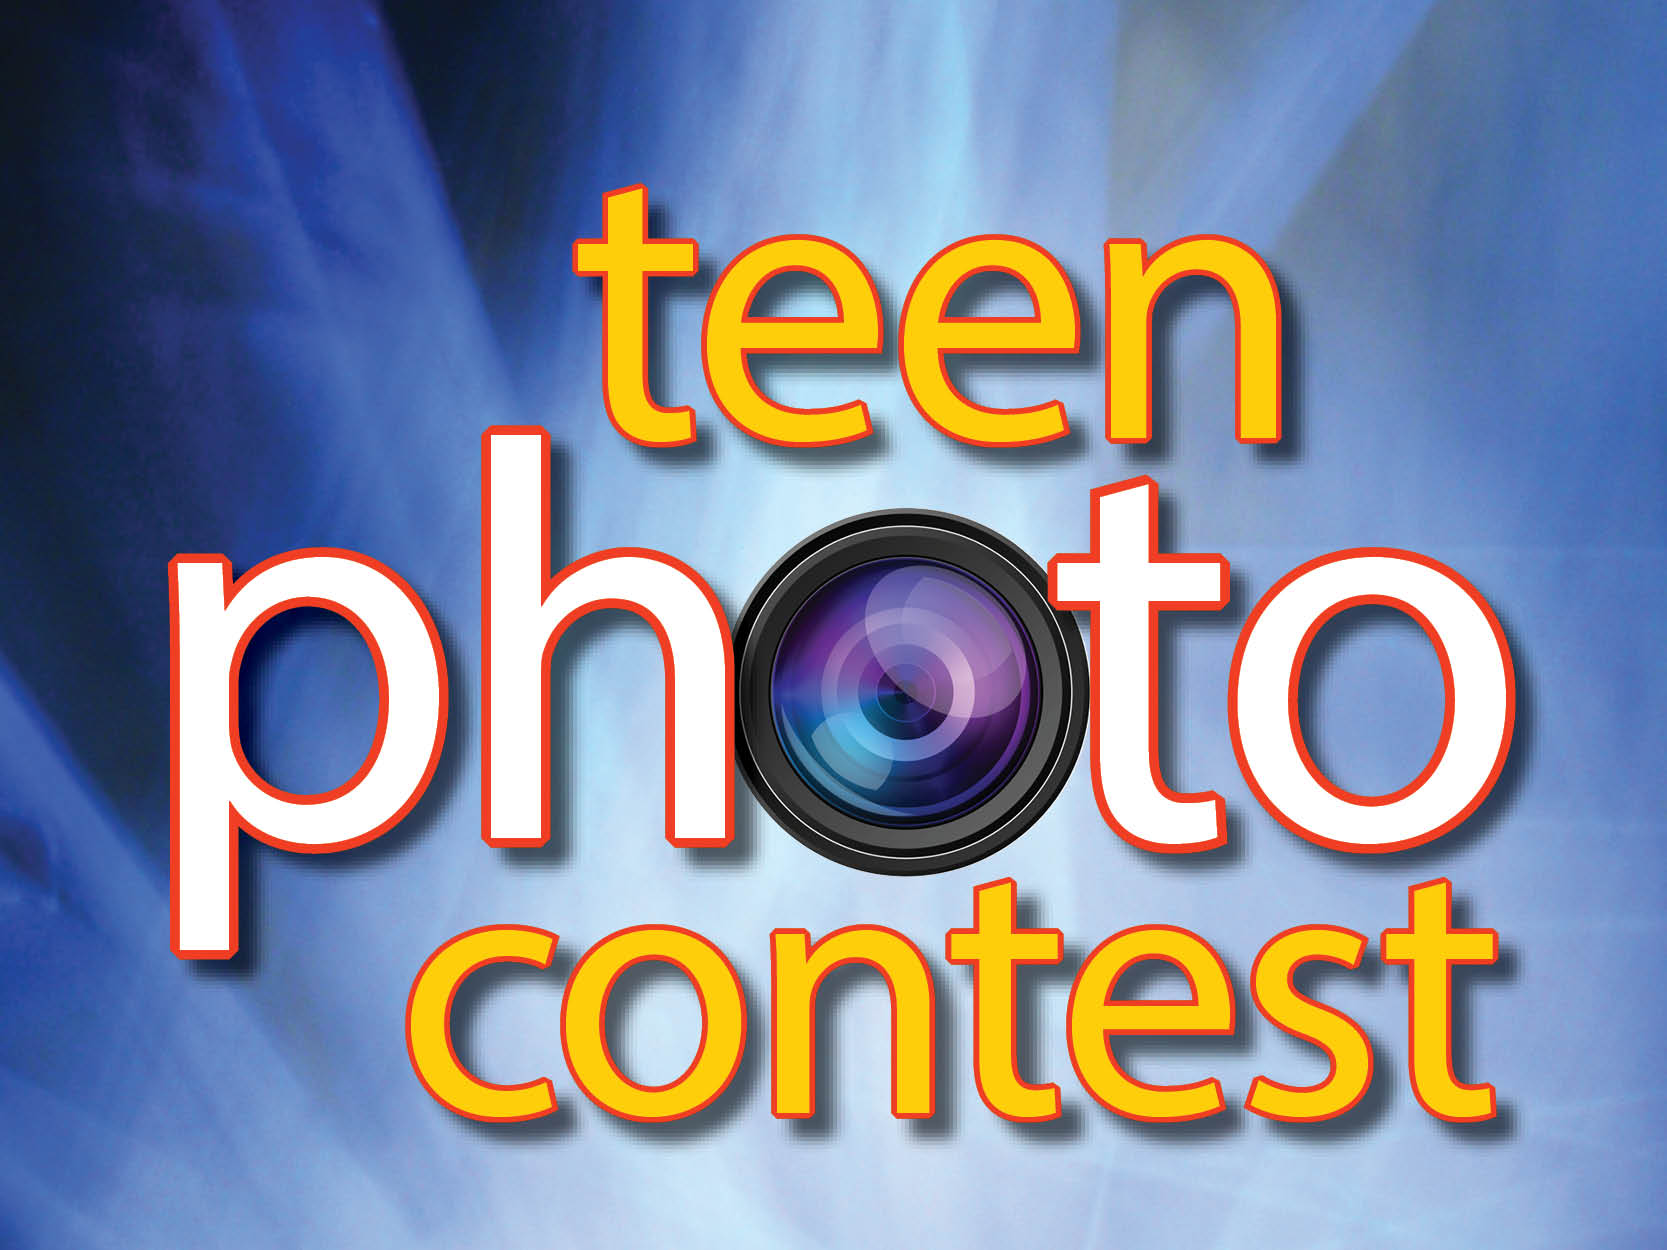 contest teen deadline april thursday march